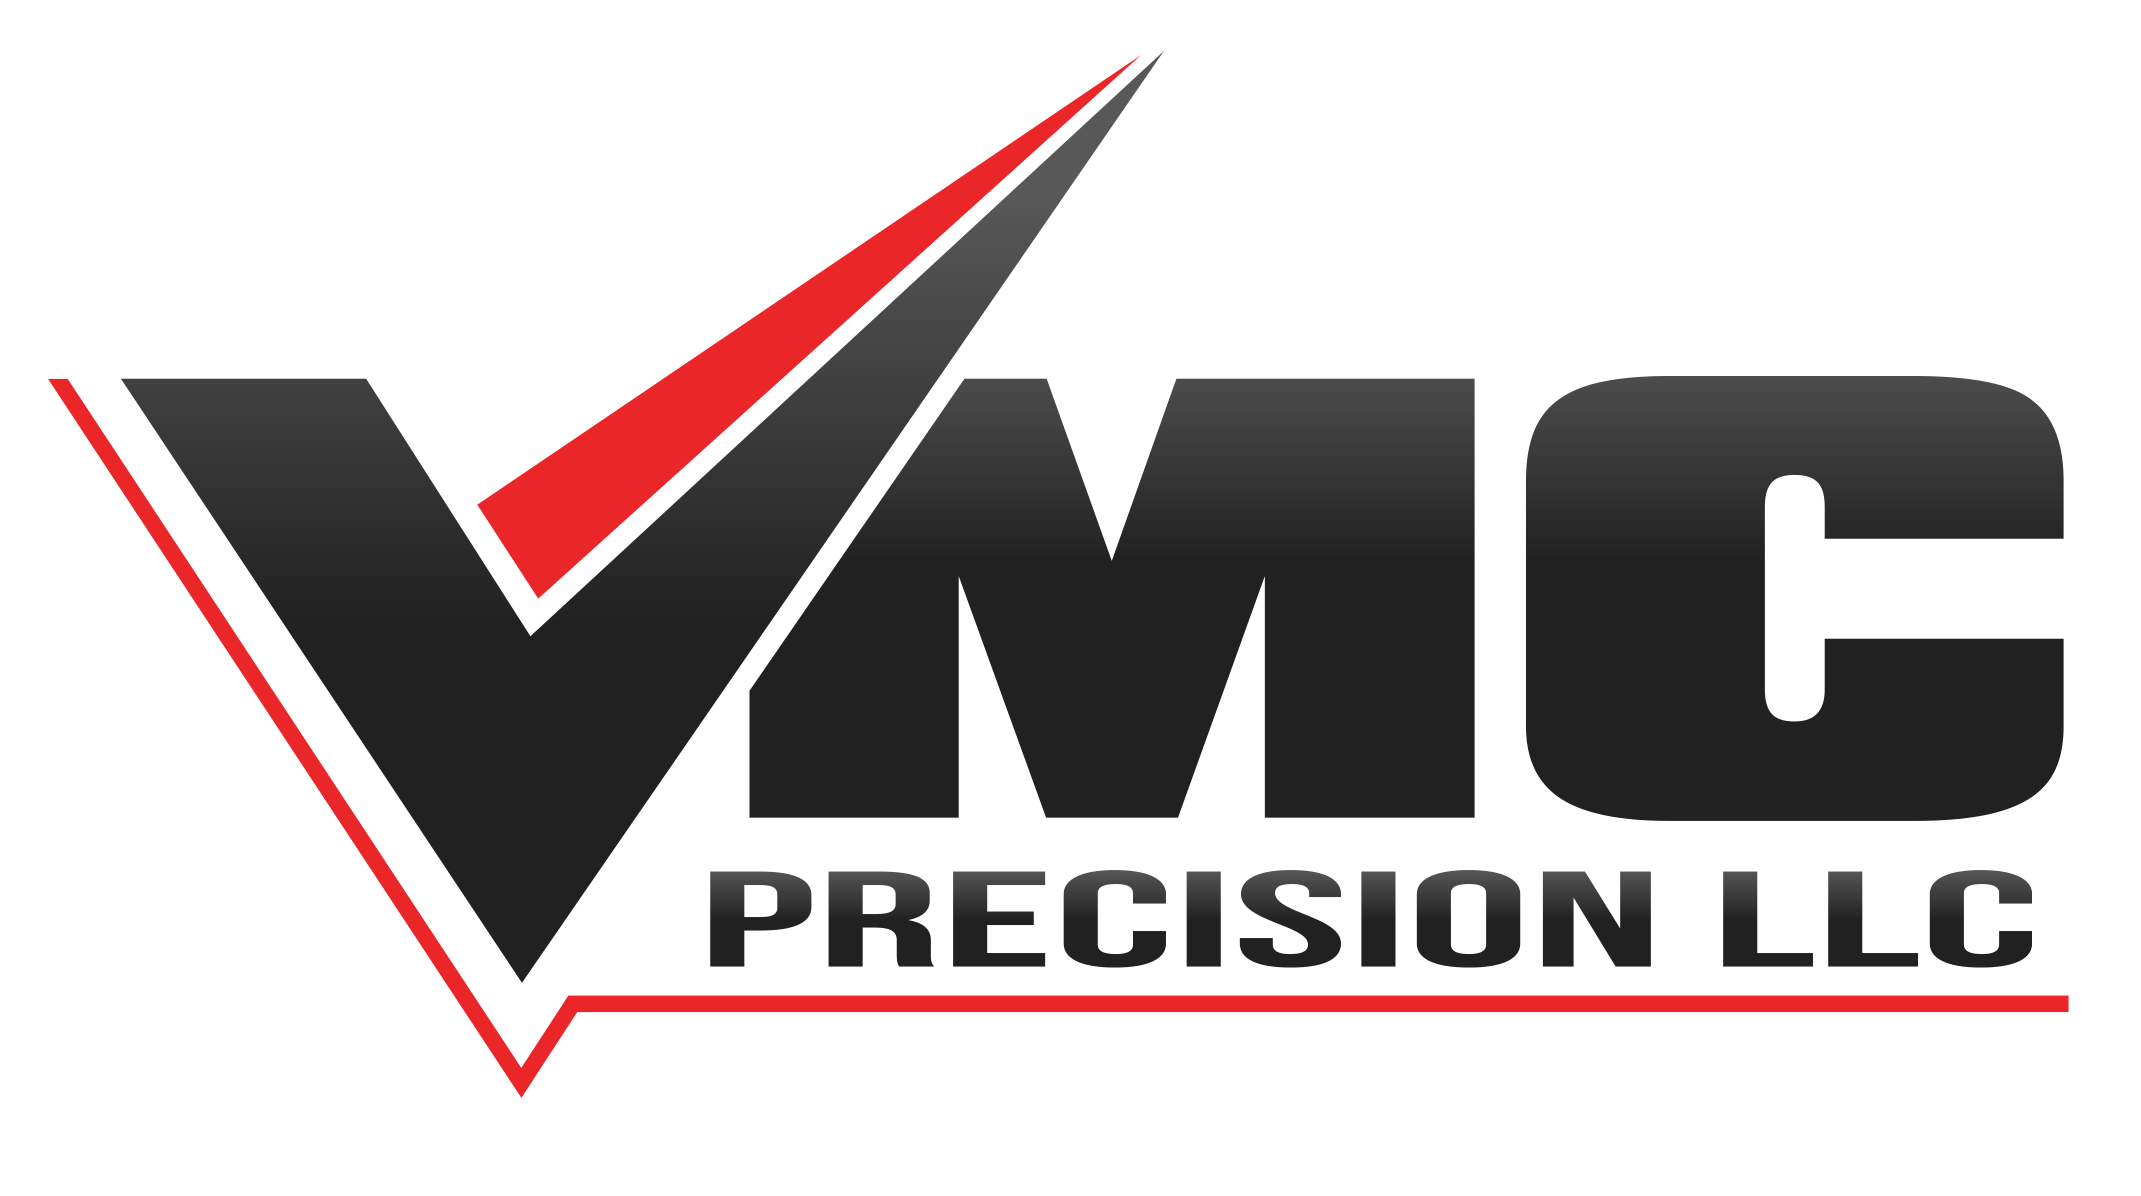 VMC Precision LLC.